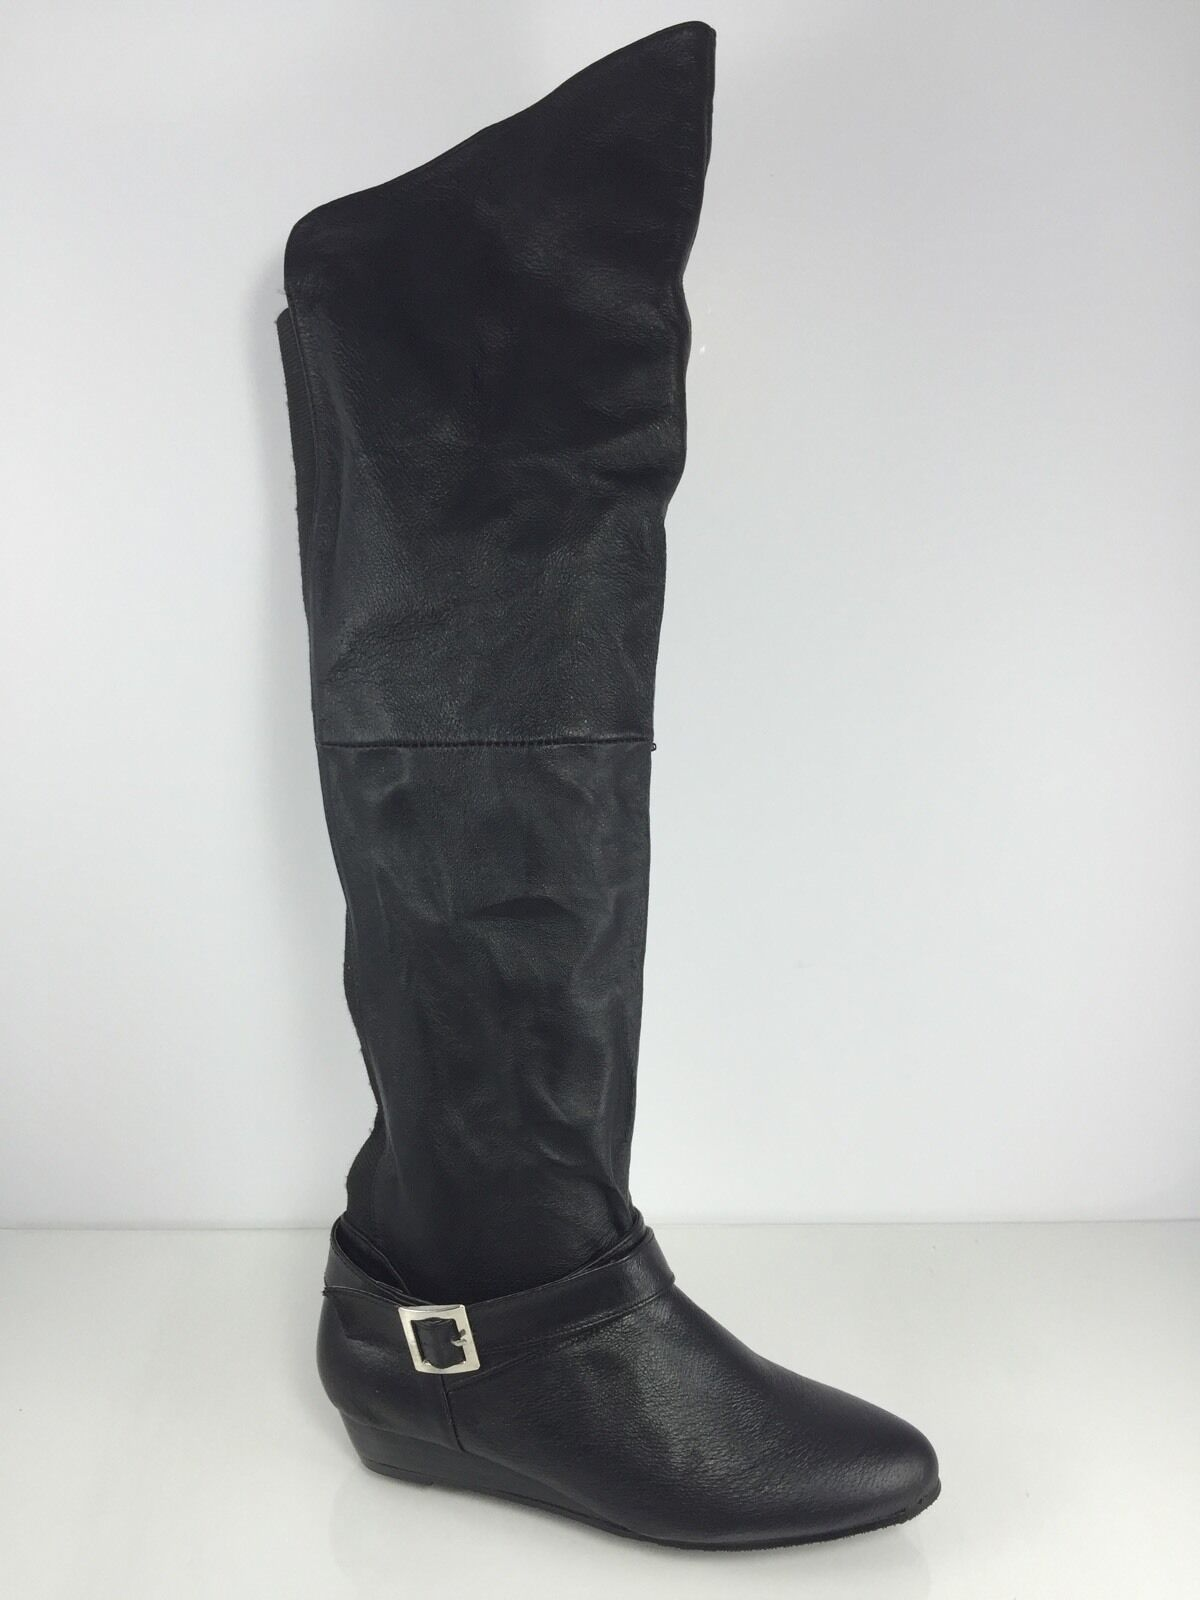 Chinese Laundry Womens Black Leather Boots 6